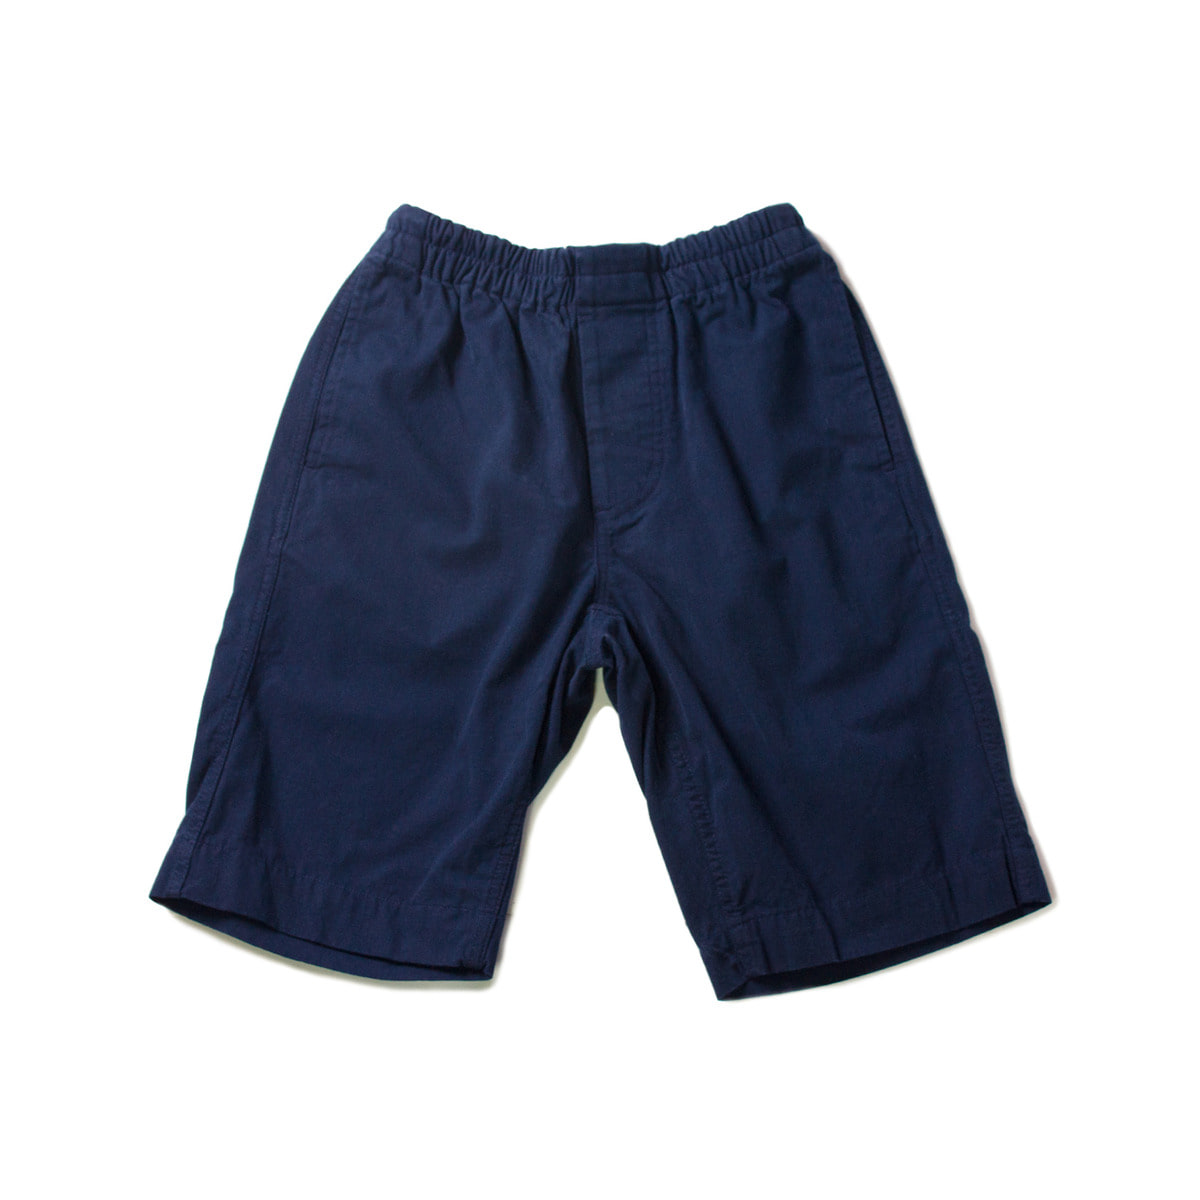 [DOCUMENT] PITCH EFFECT COTTON SHORTS 'NAVY'